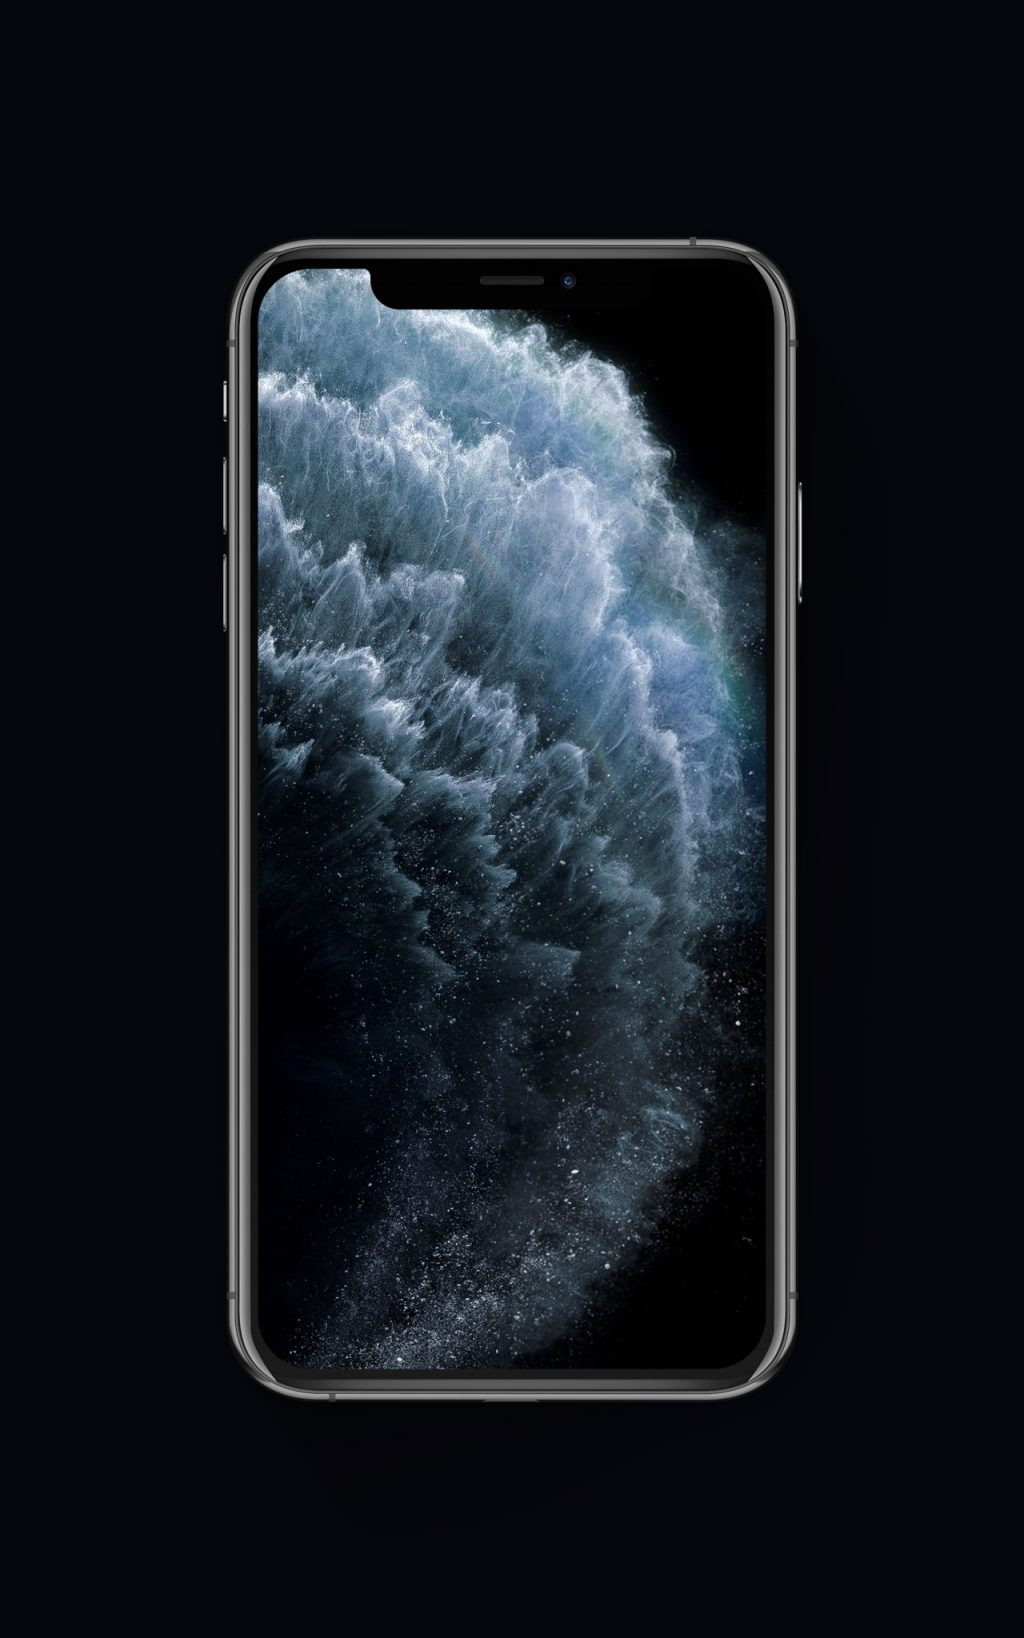 iPhone 11 Pro wallpapers